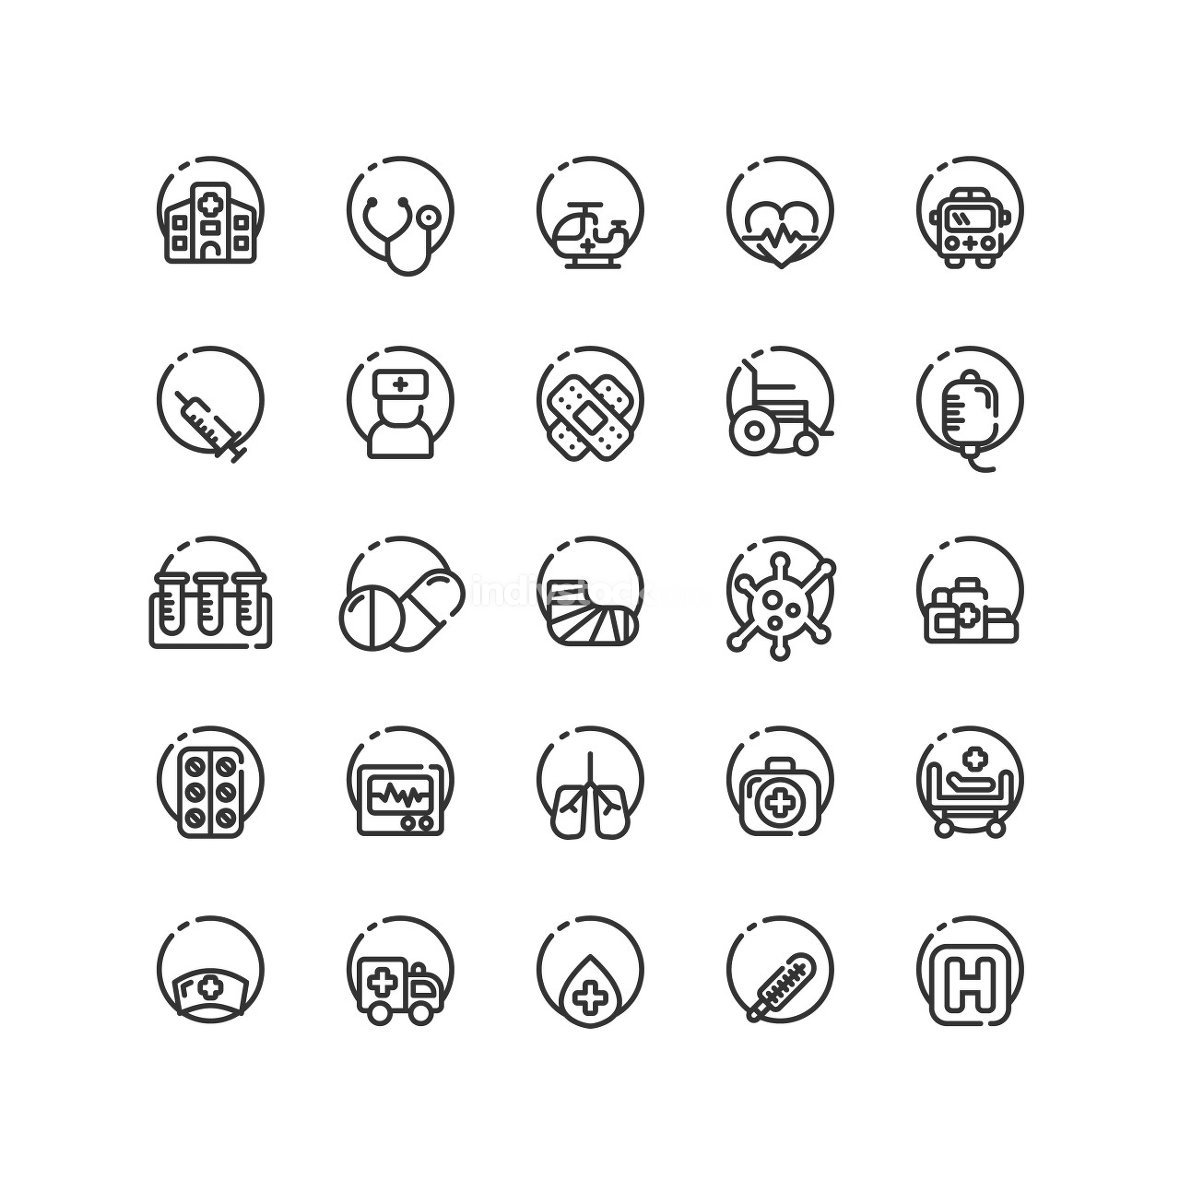 Hospital outline icon set. Vector and Illustration.